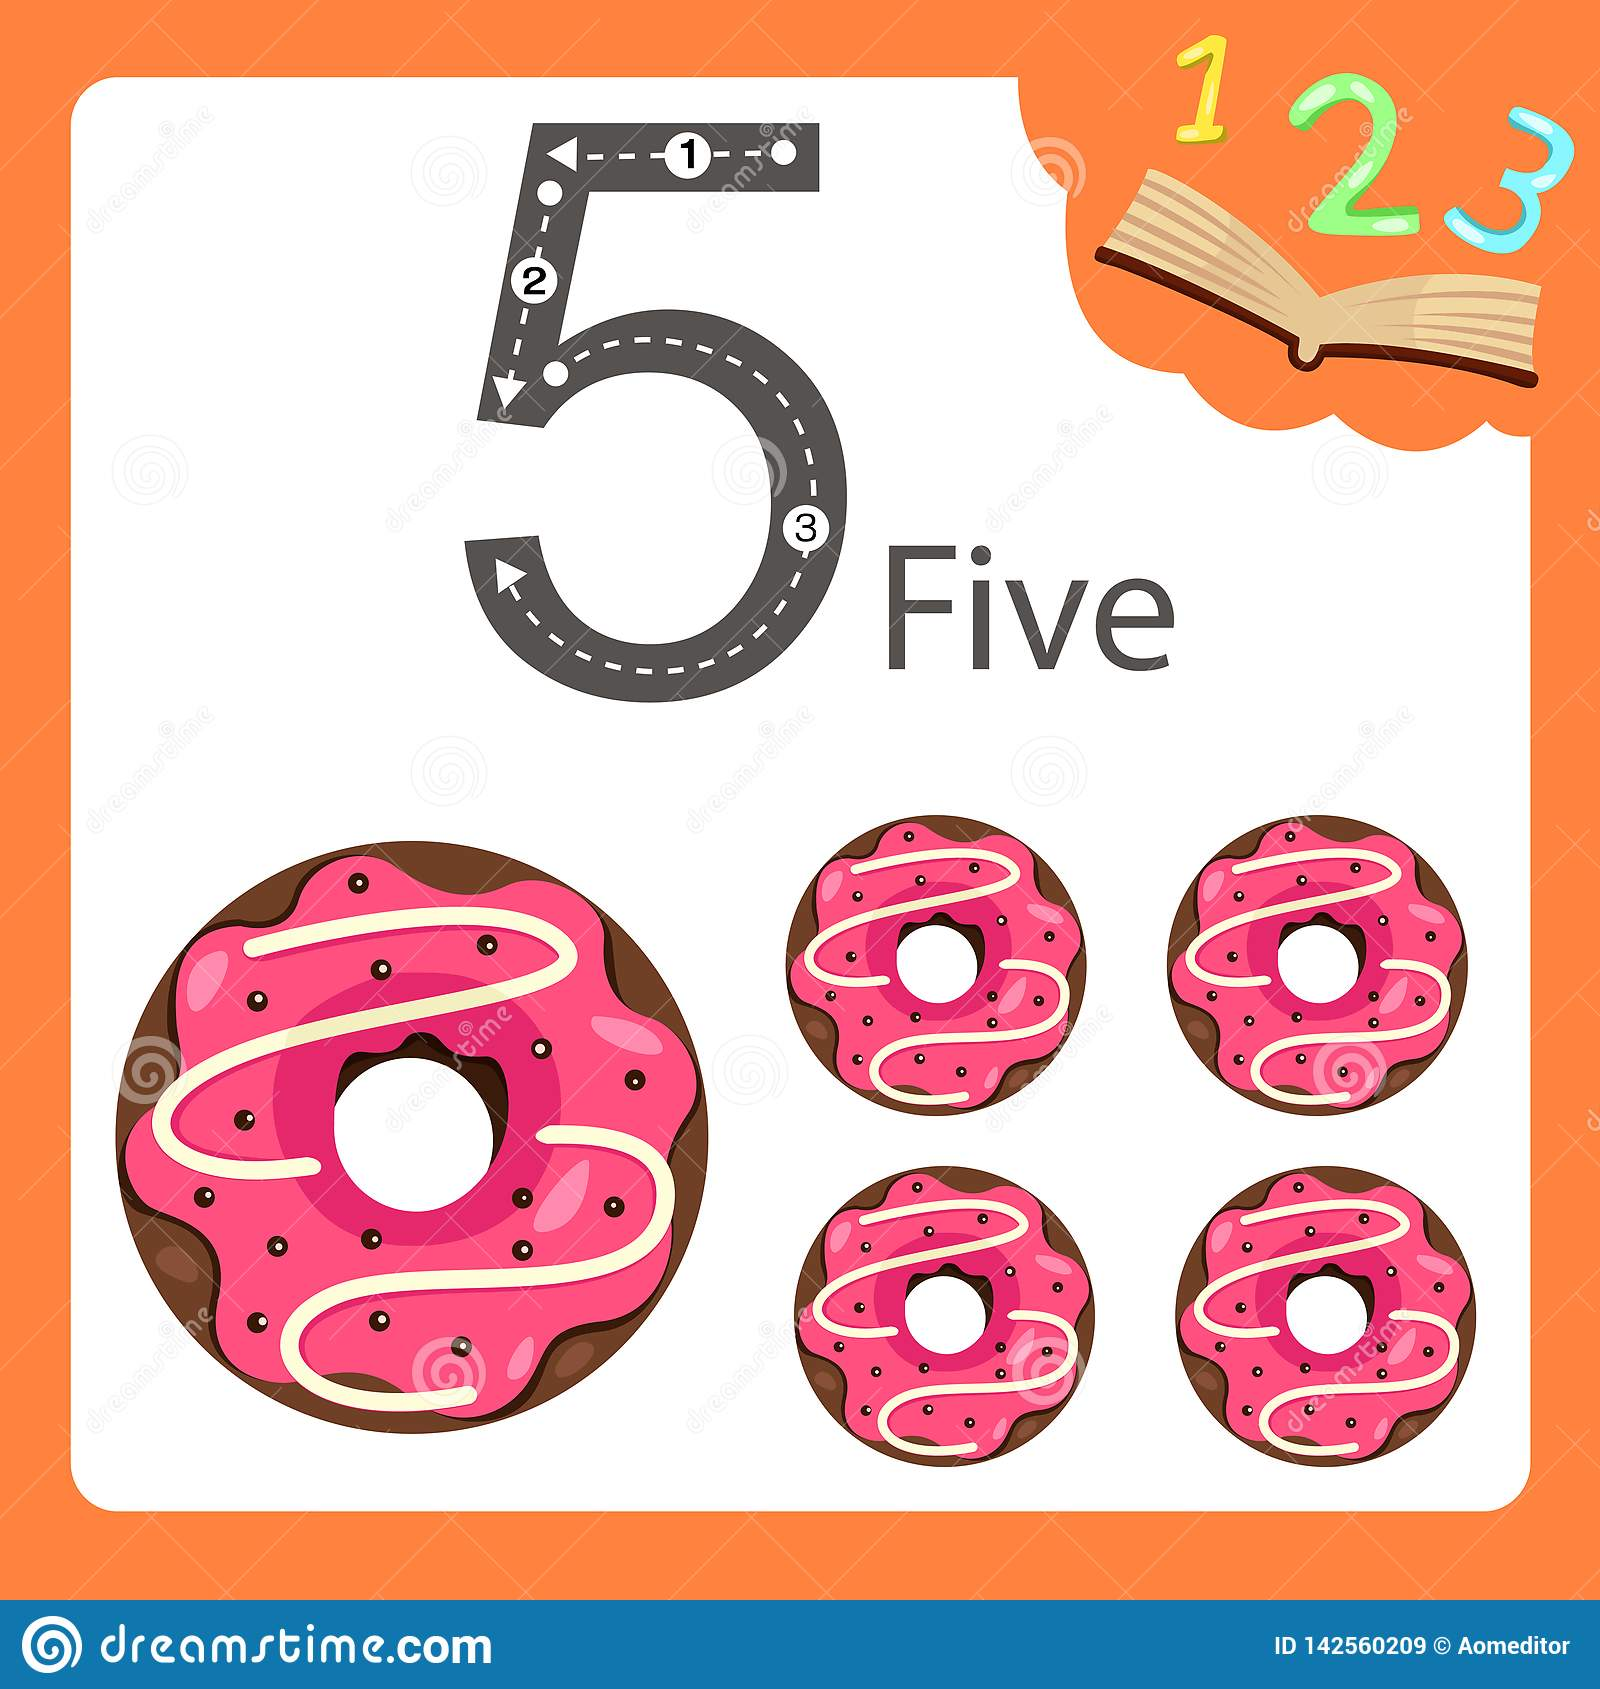 Illustrator Of Five Number Donut Stock Vector